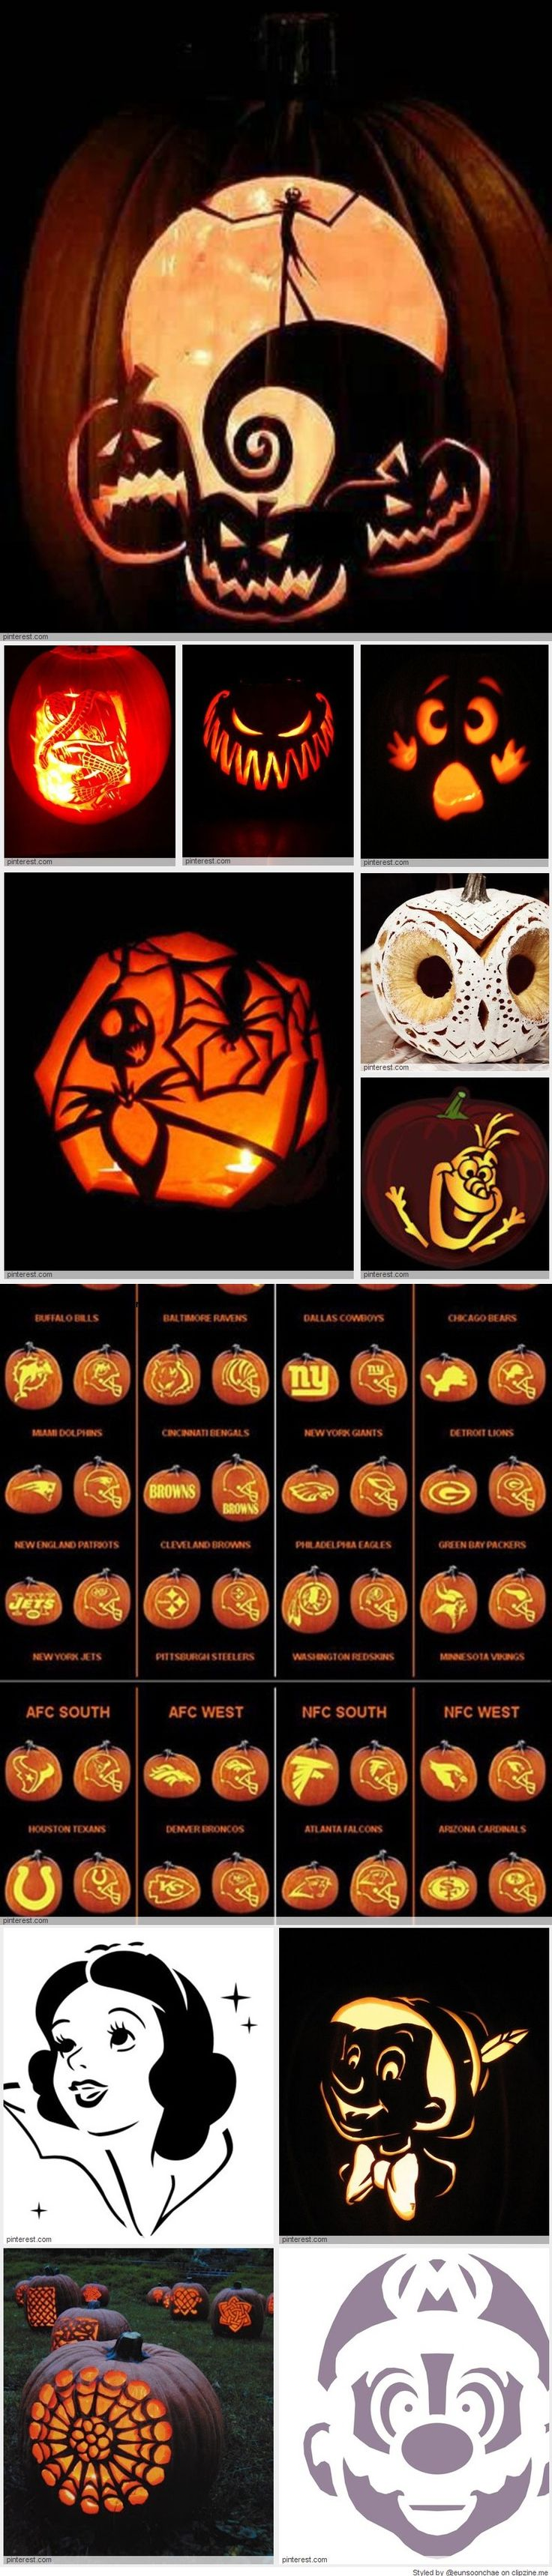 63 best pumpkin carving images on pinterest | halloween pumpkins